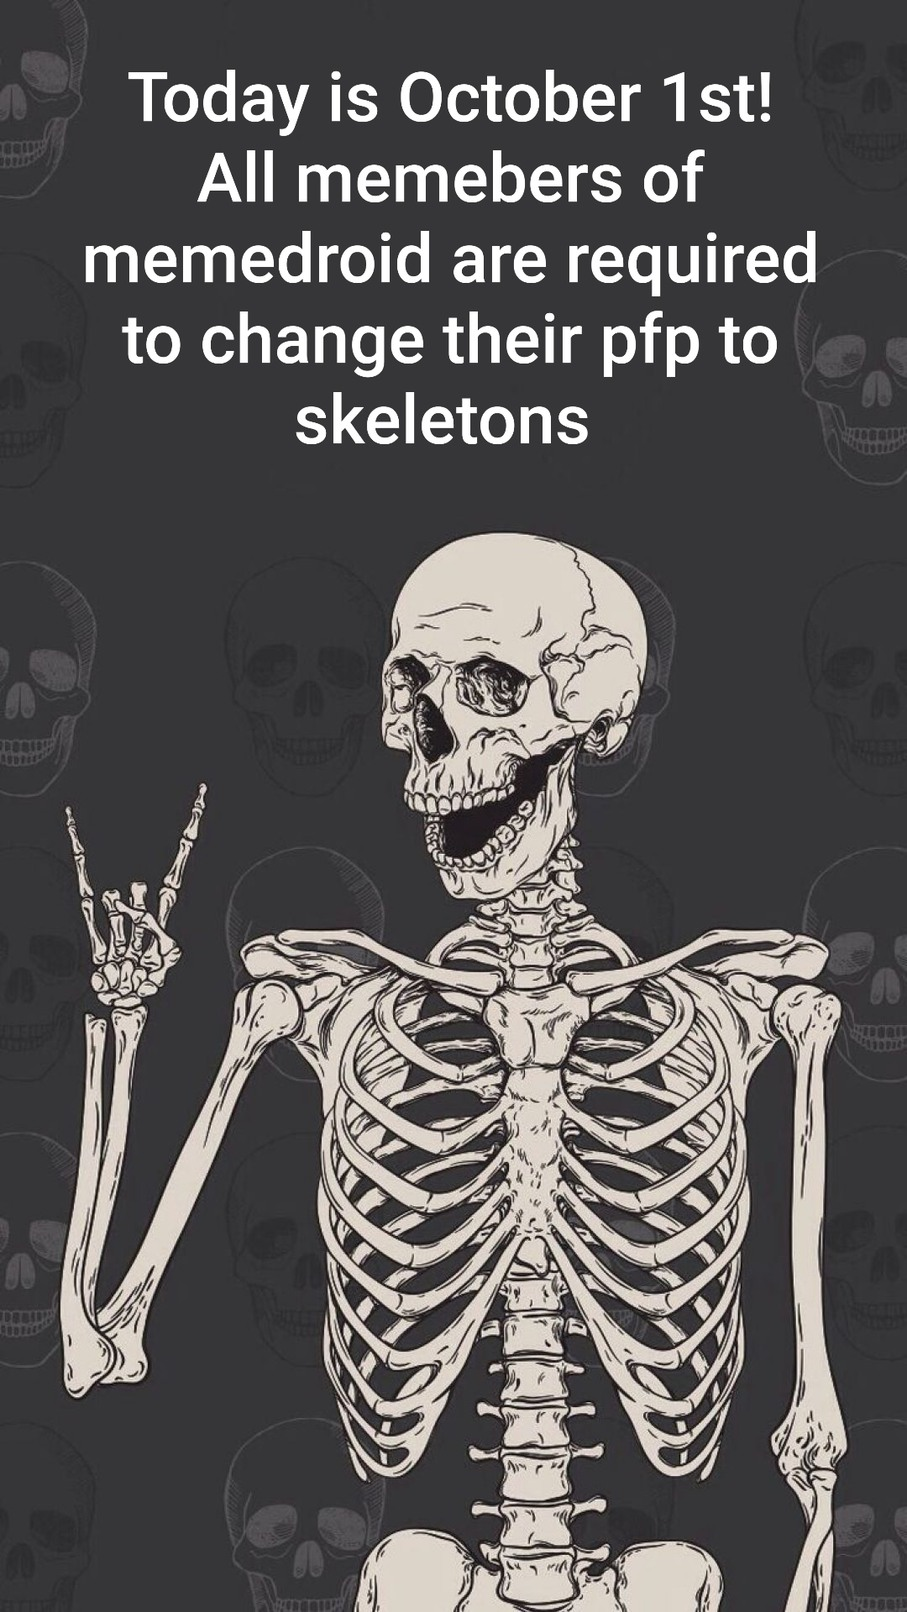 Y'all need to change it to skeletons pfp - meme